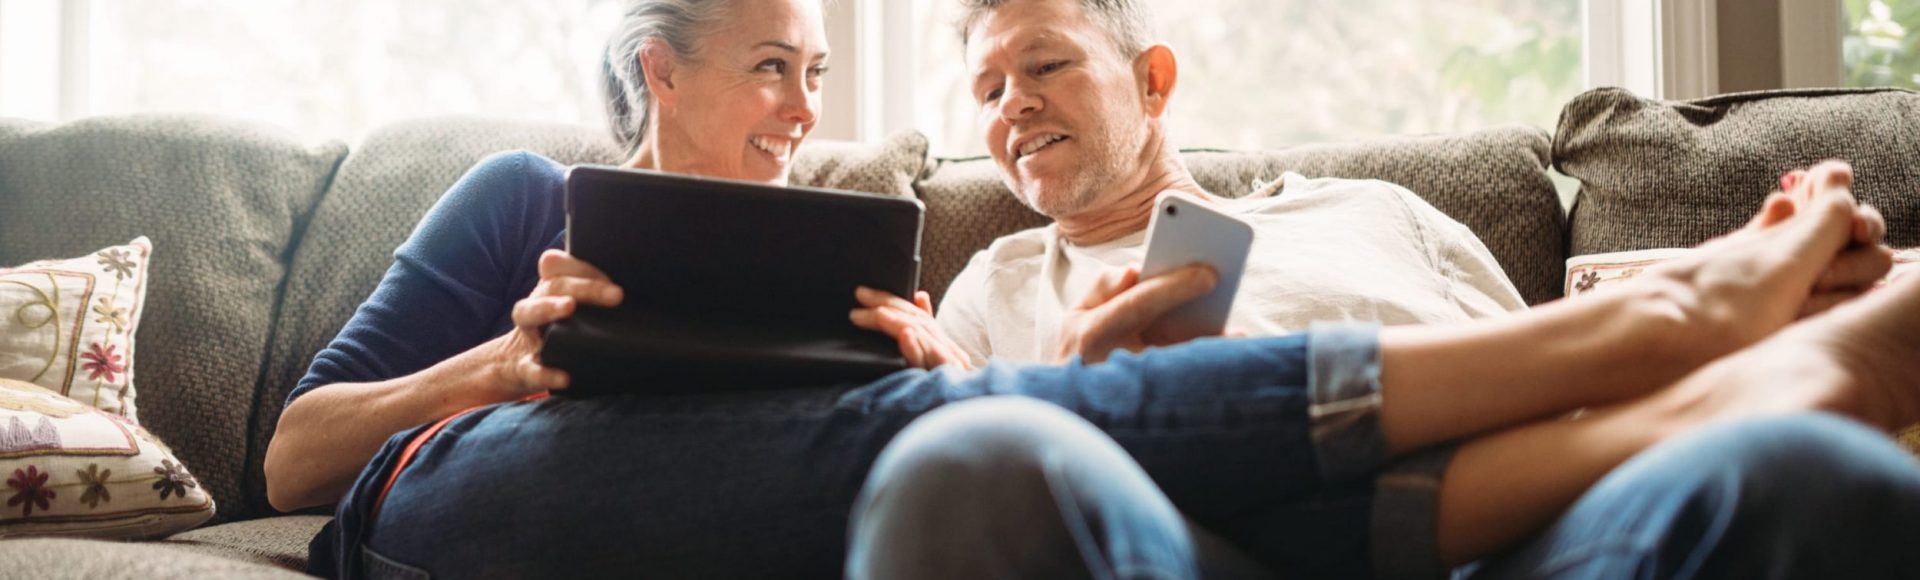 A man and woman are sitting on a sofa looking at a tablet